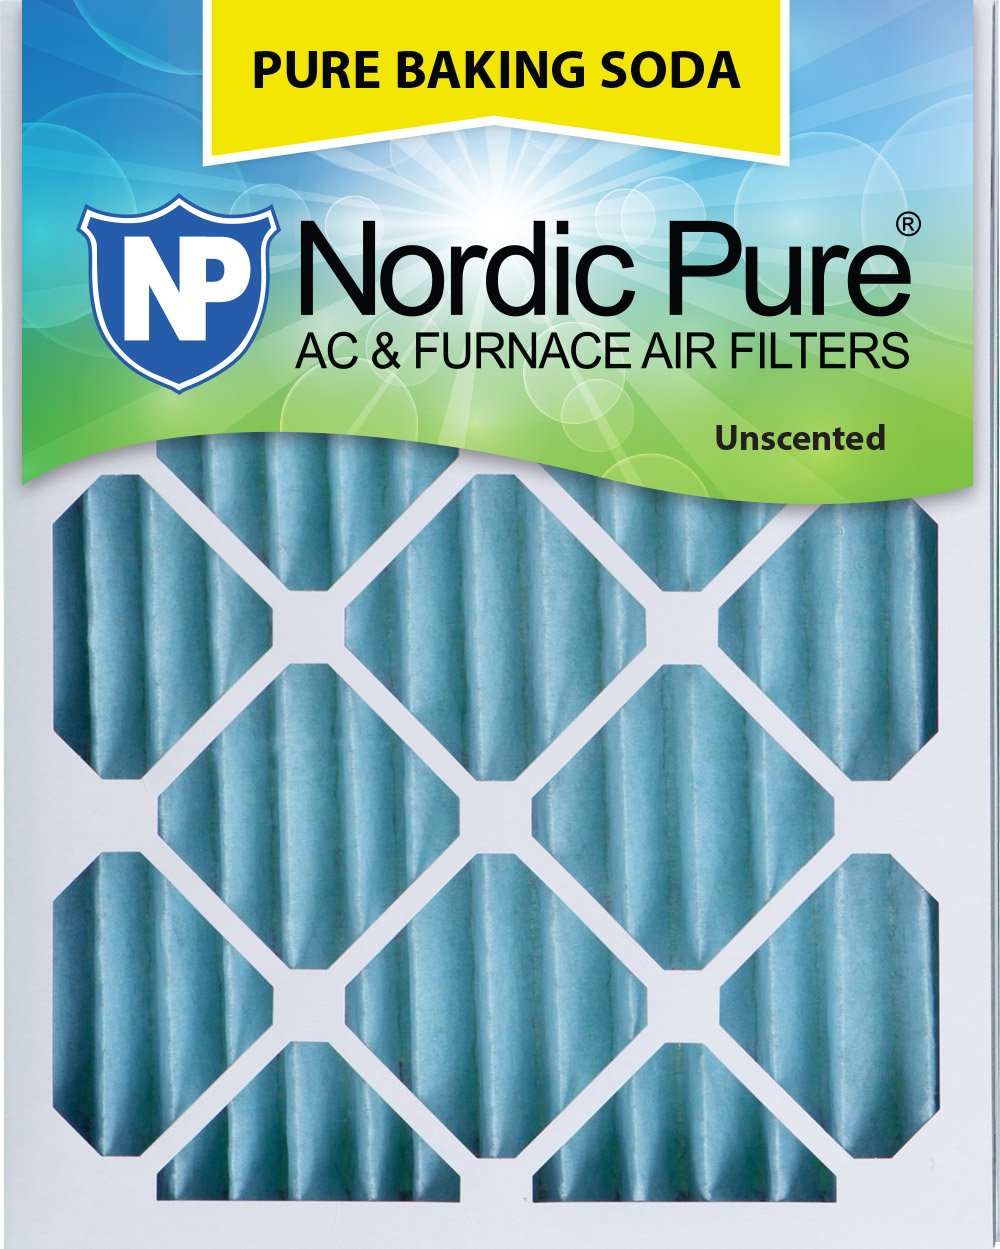 "Nordic Pure 20x25x2 Pure Baking Soda Odor Deodorizing AC Furnace Air Filters, 20"" x 25"" x 2"", 3 Piece"